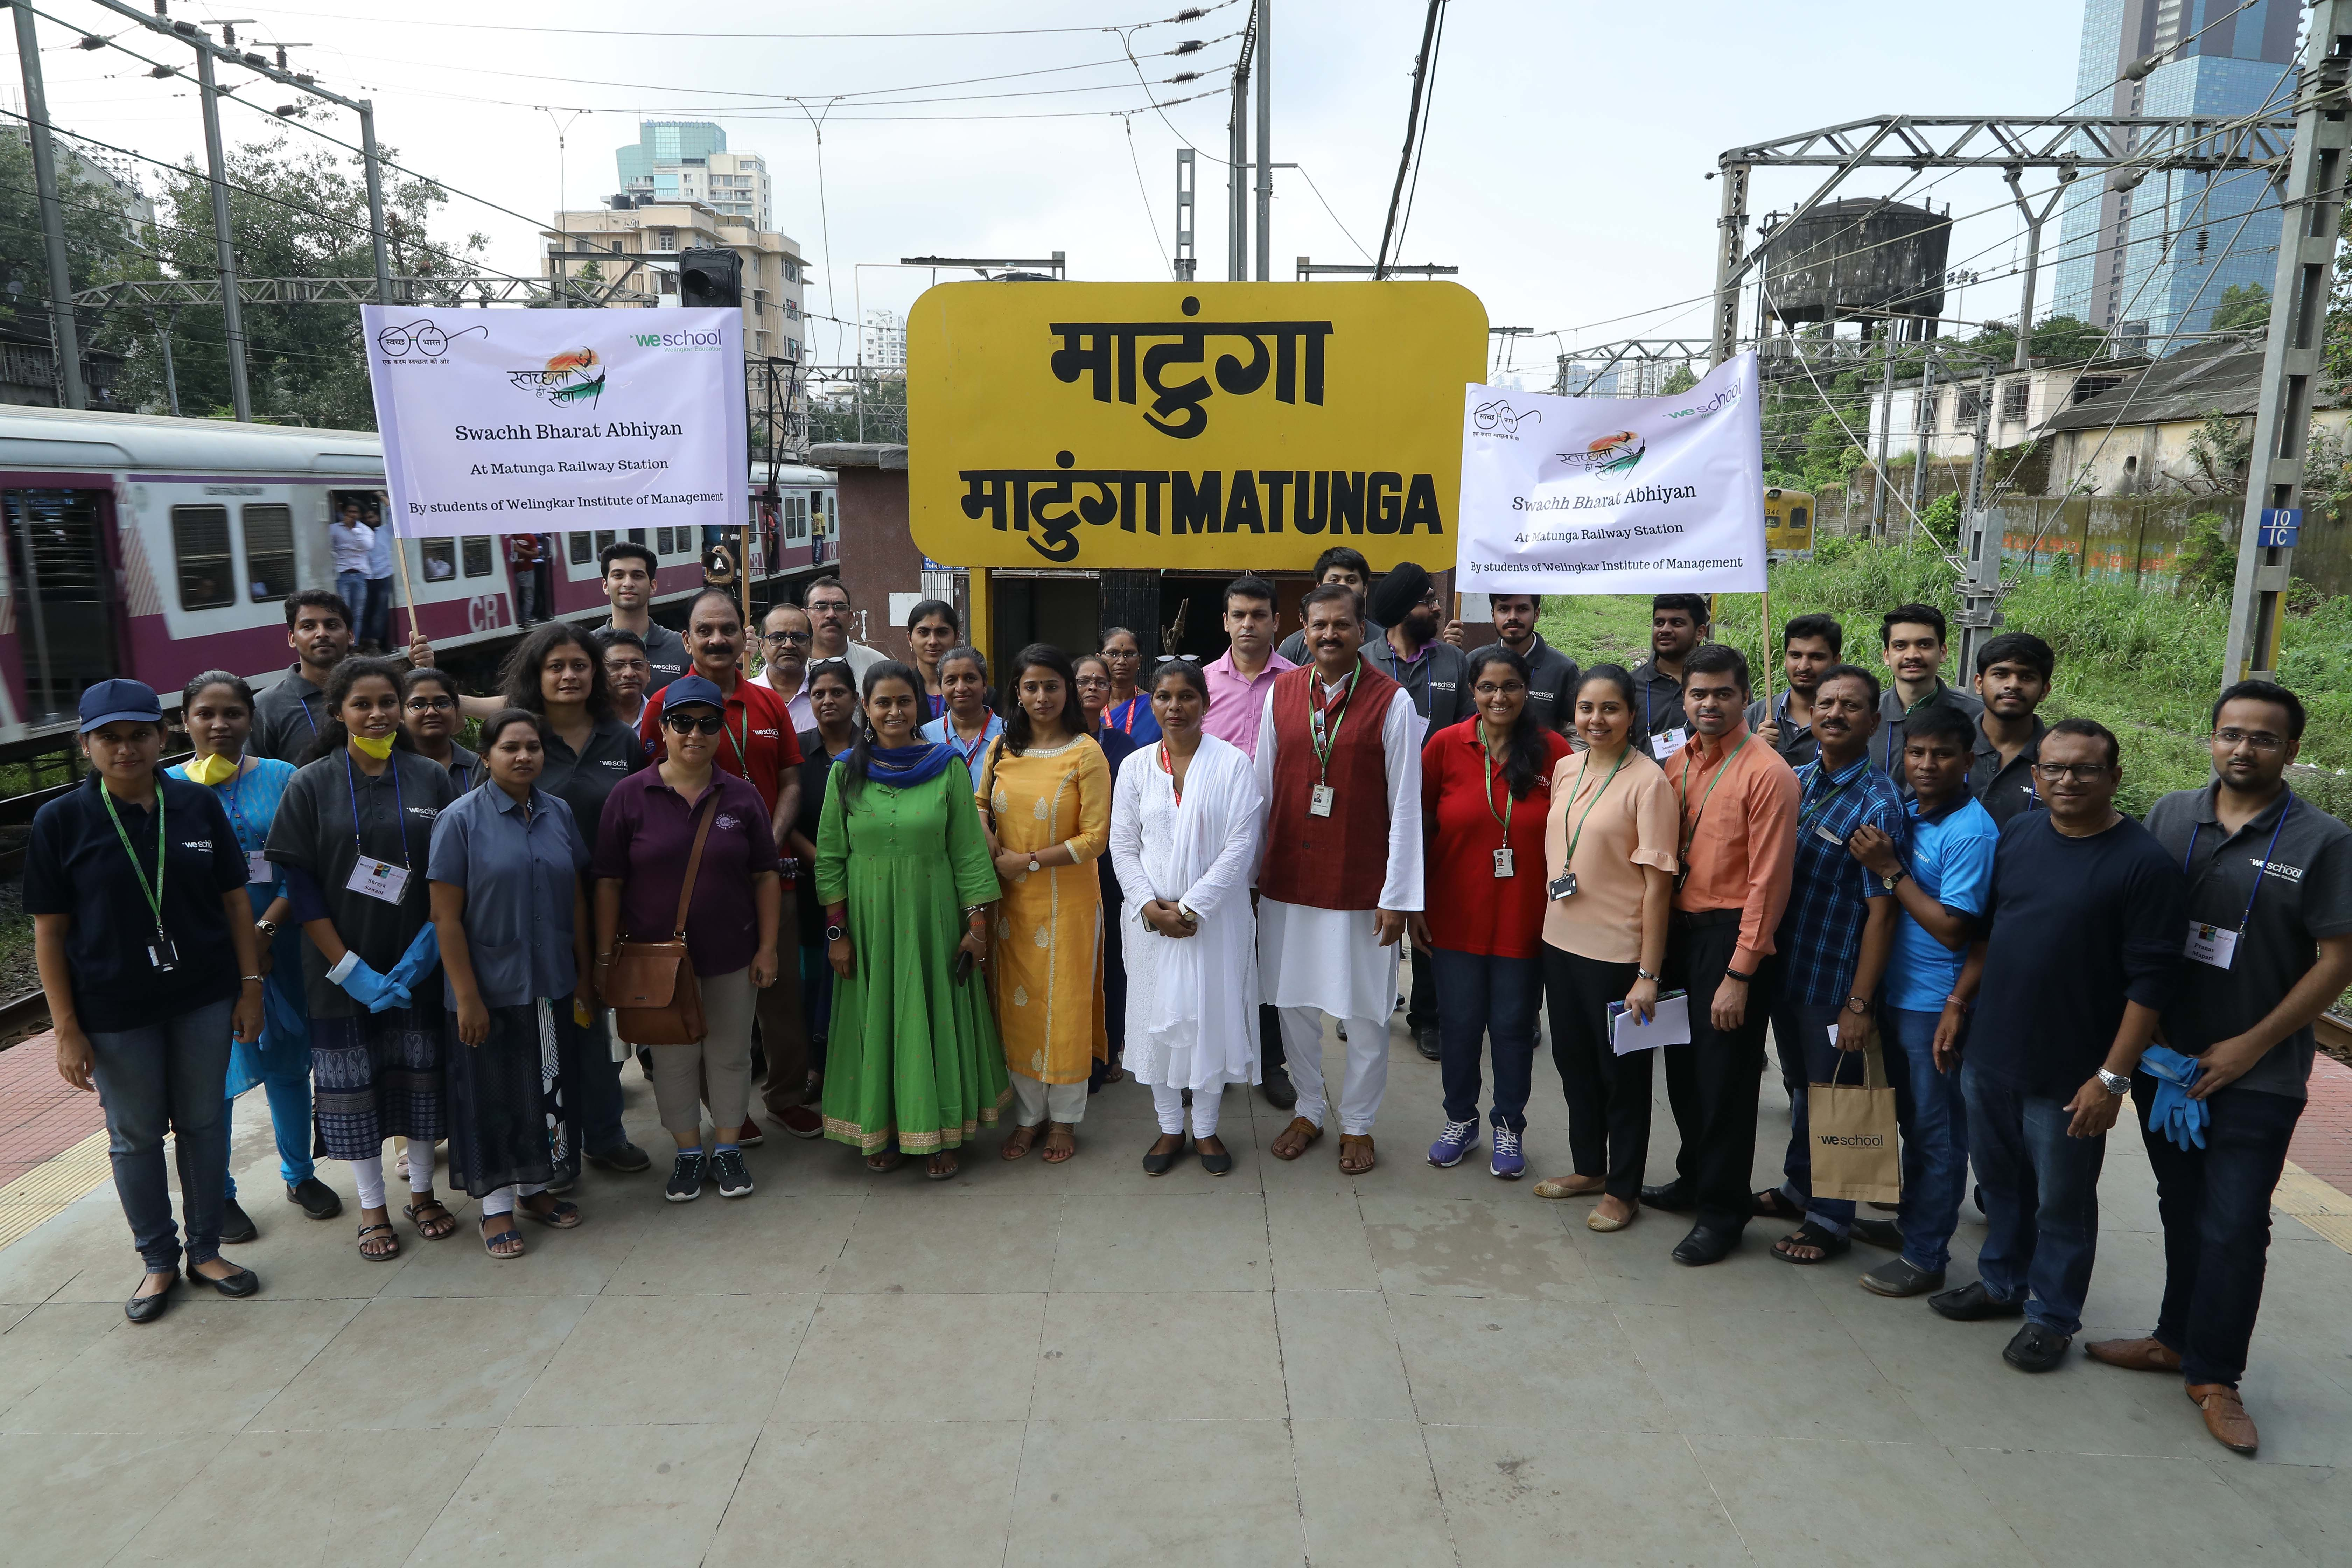 WeSchool students organise a cleanliness and beautification drive at Matunga - Central Railway Station